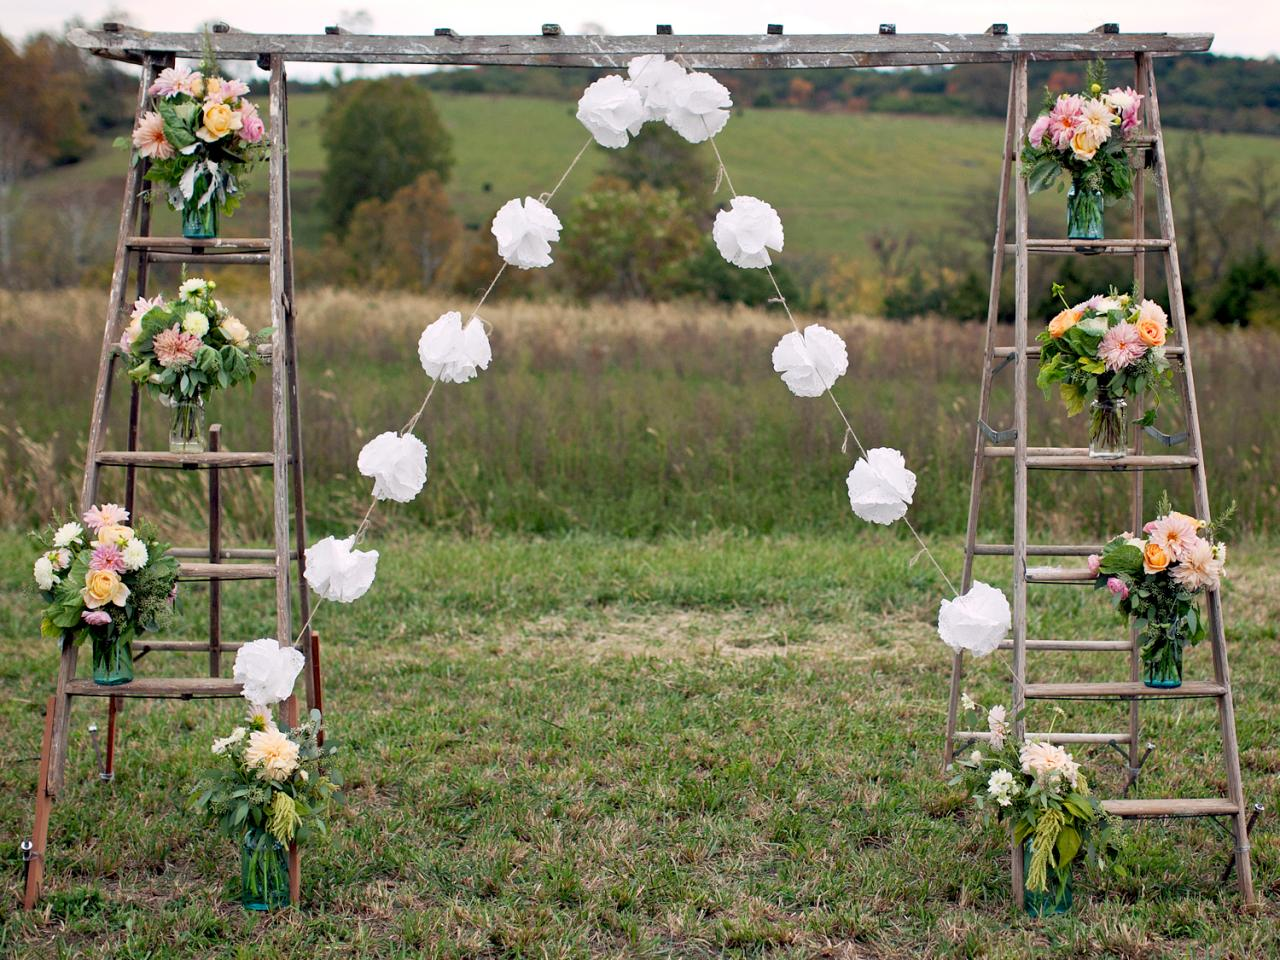 Bridal arch decoration ideas diy vintage wedding entrance ideas diy vintage wedding entrance ideas junglespirit